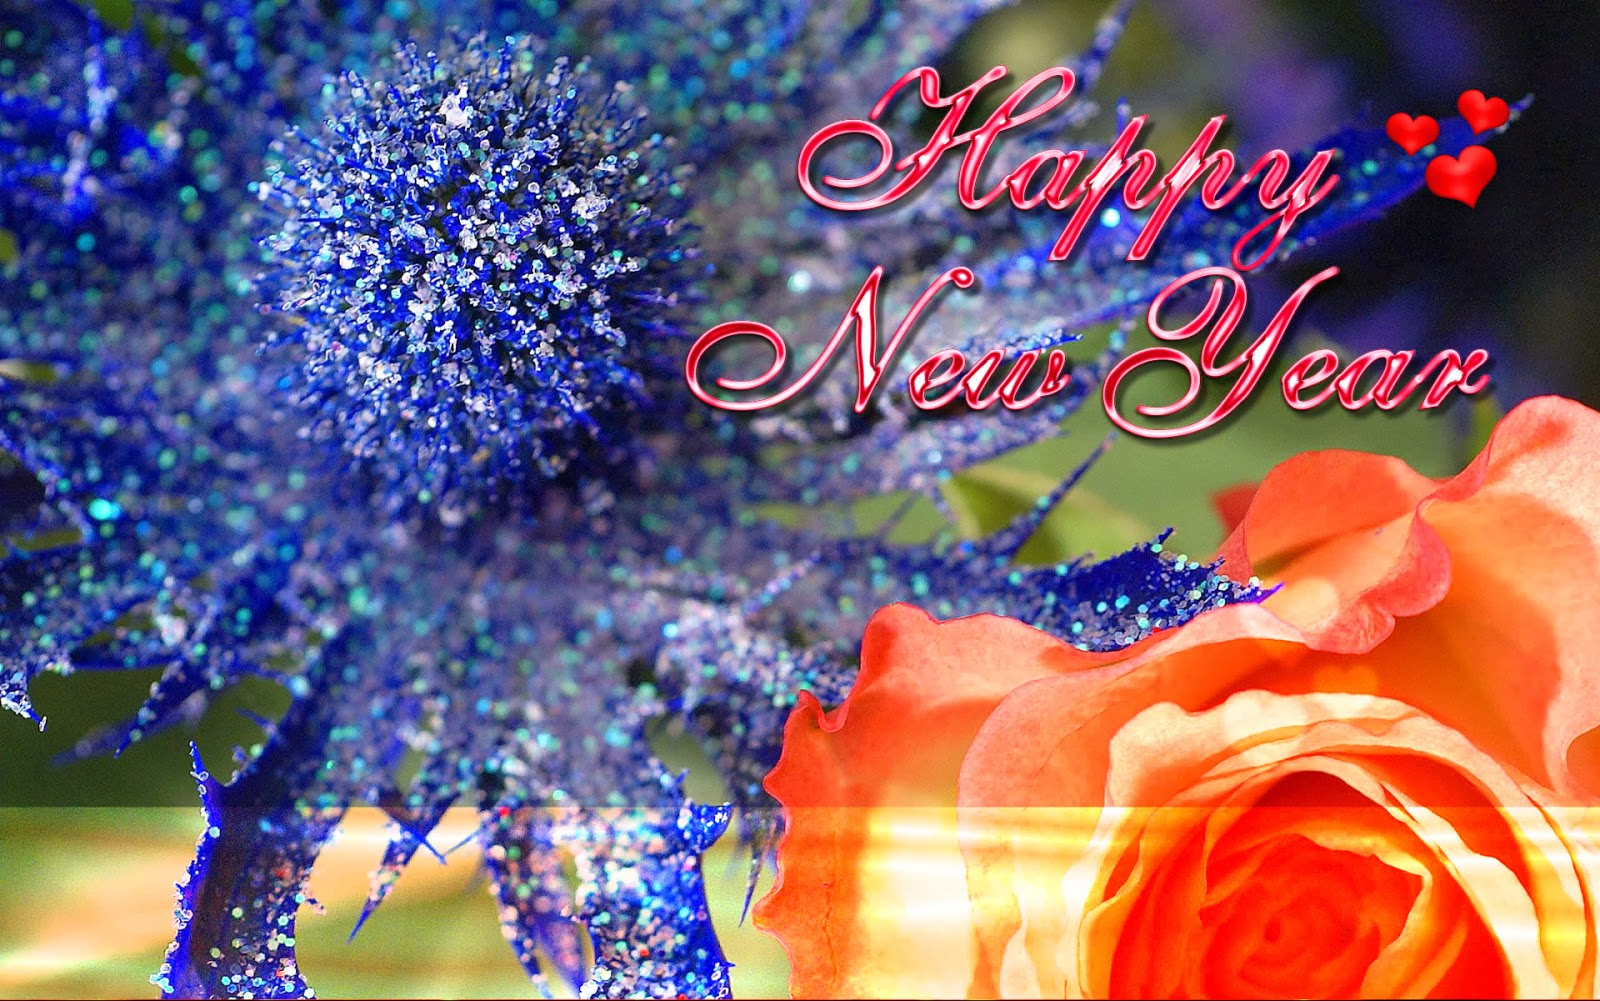 2014 happy new year animated greeting cards happy new year 2013 tips here you can find happy new year 2014 animated wishes greeting cards new year animated wishes greeting cards with warm sincere wishes m4hsunfo